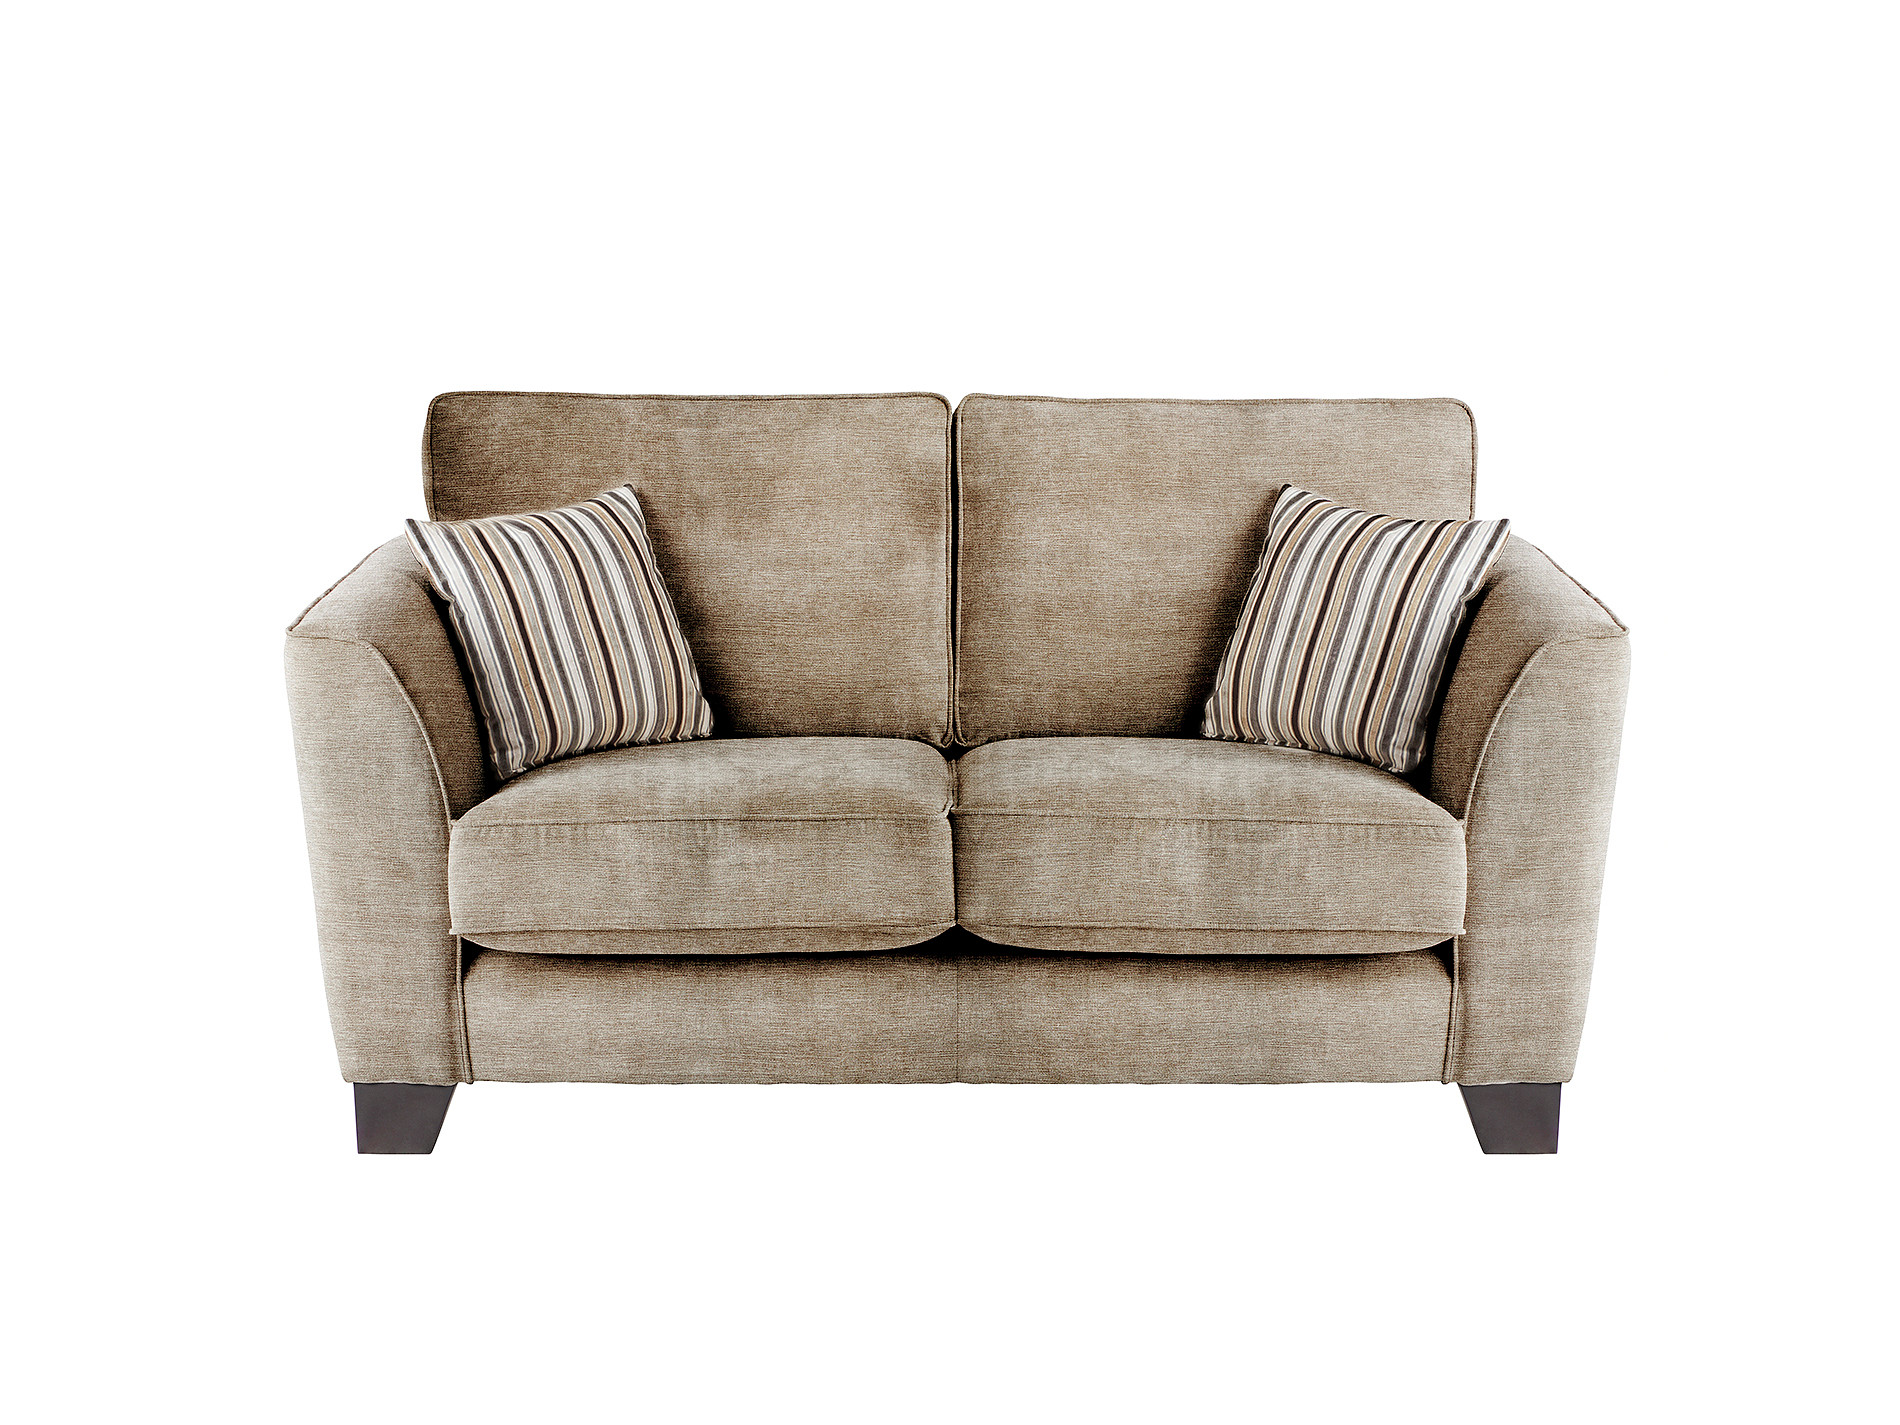 Lauren Small Sofa In Graceland Taupe